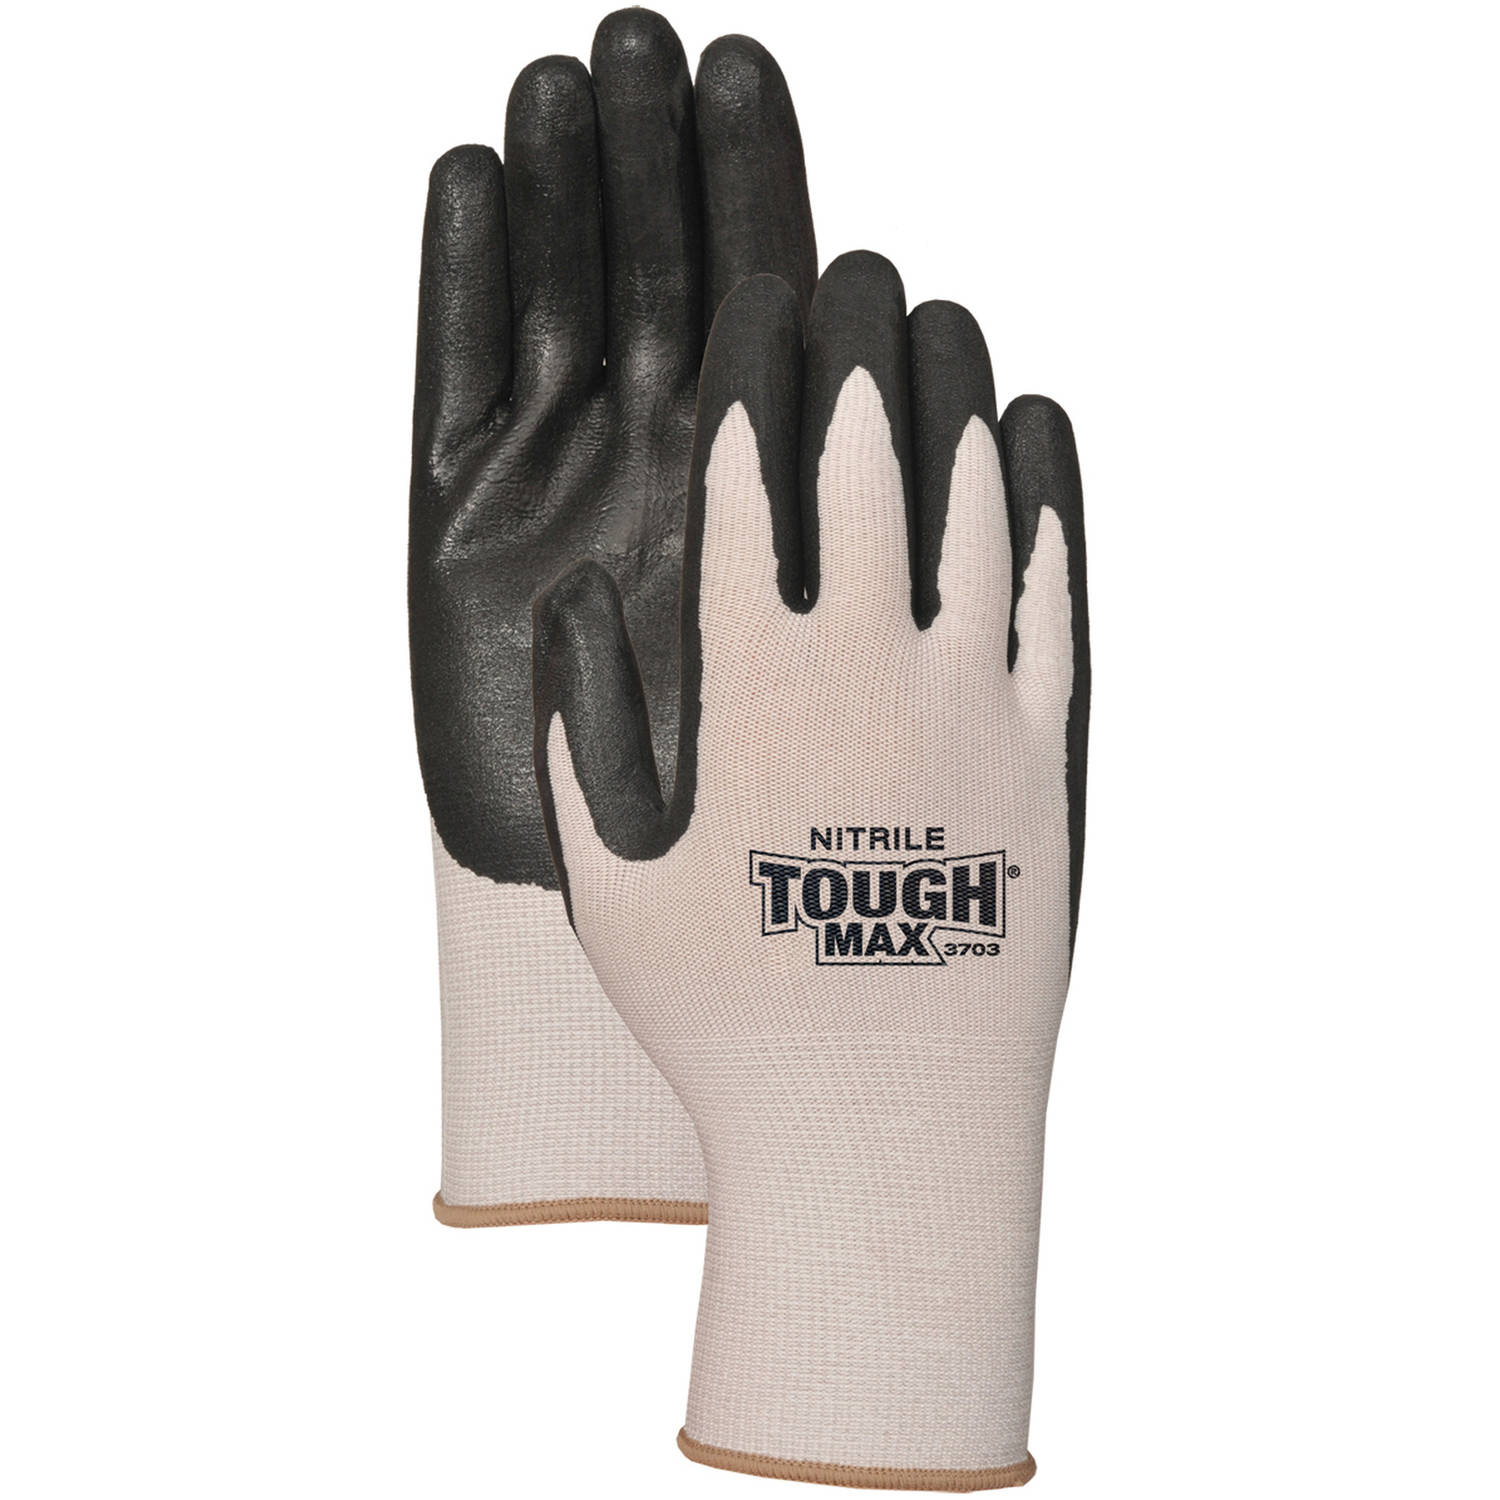 Bellingham Glove C3703XL Extra Large Nitrile with Cool Max Gloves